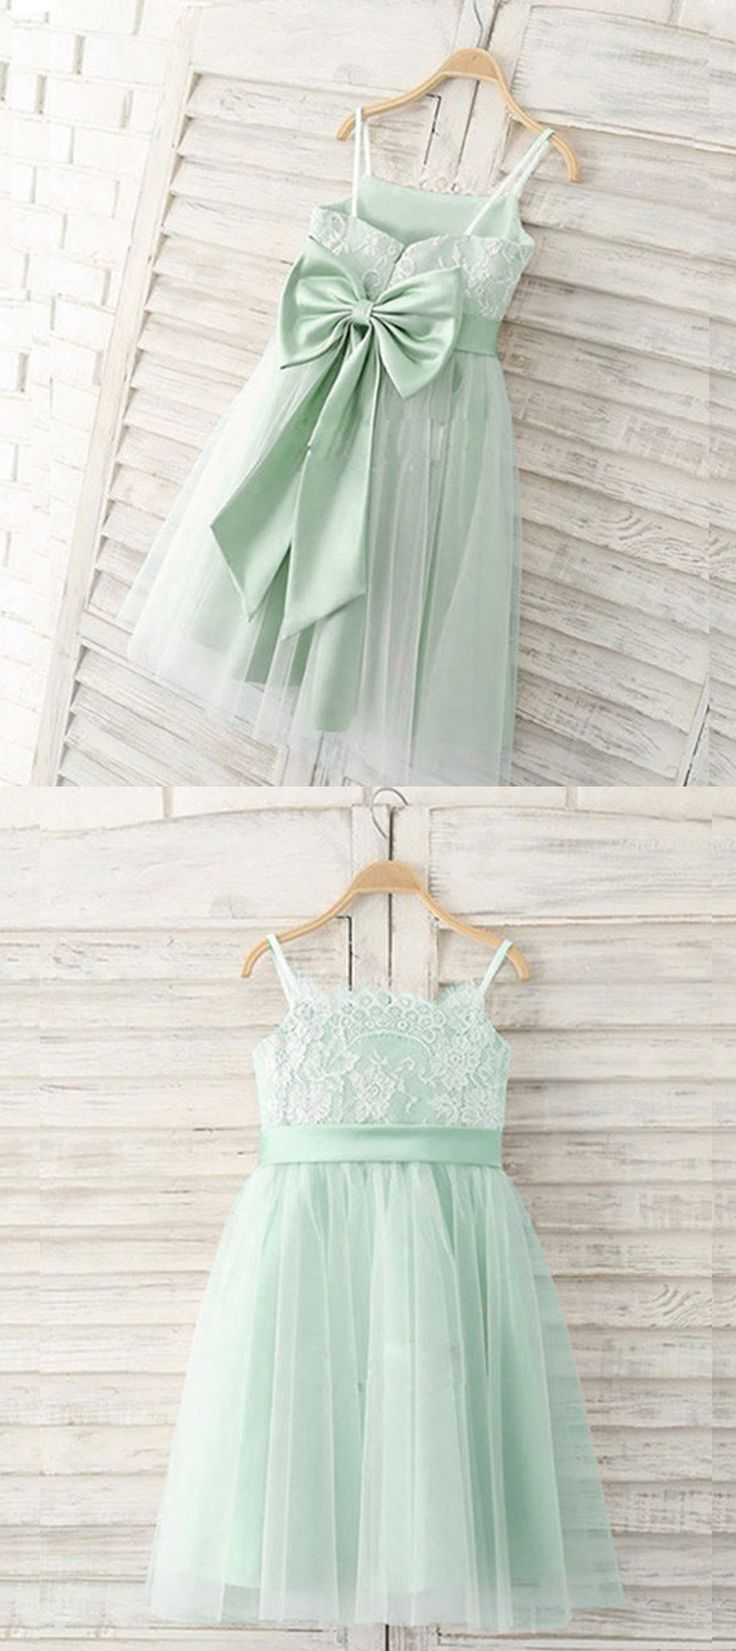 Girl Dresses,Lace girl dresses,little girl dresses,mint dresses   #girldresses